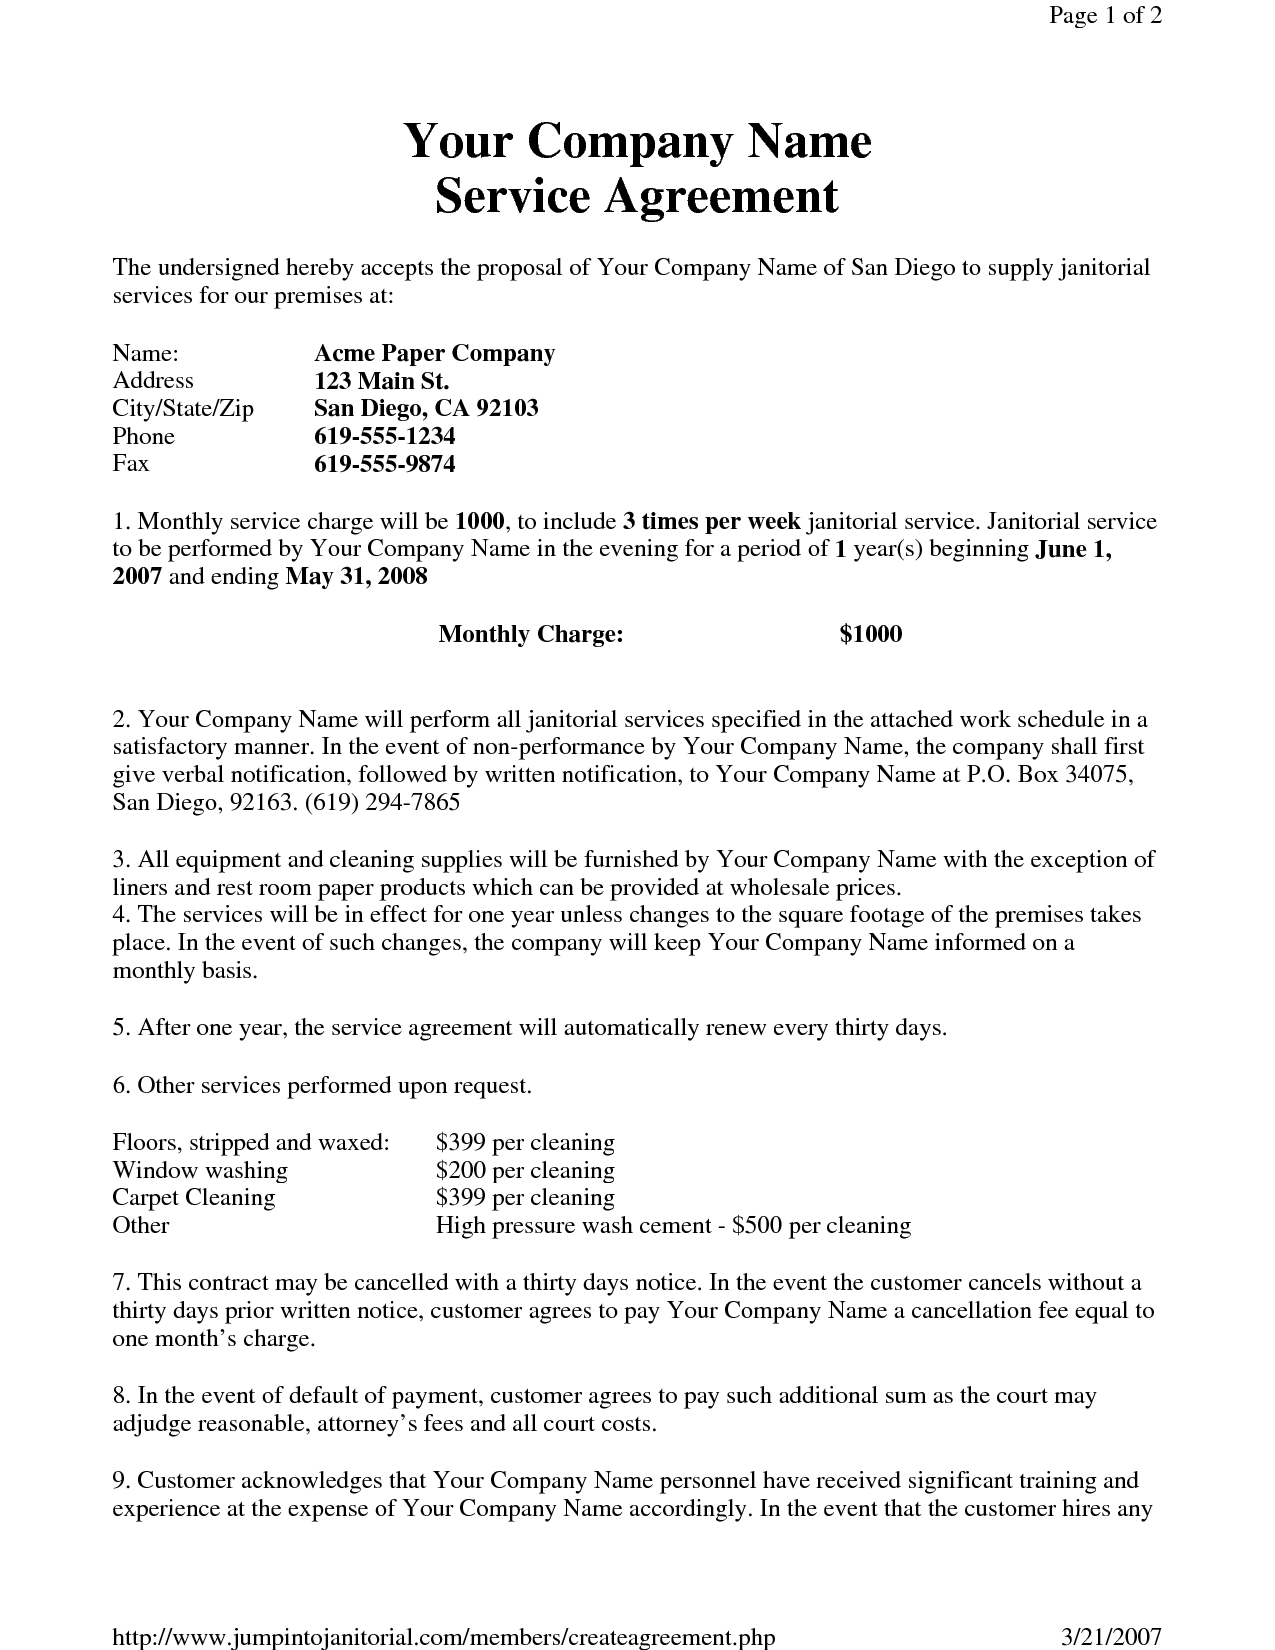 janitorial service agreement by hgh19249 sample. Black Bedroom Furniture Sets. Home Design Ideas